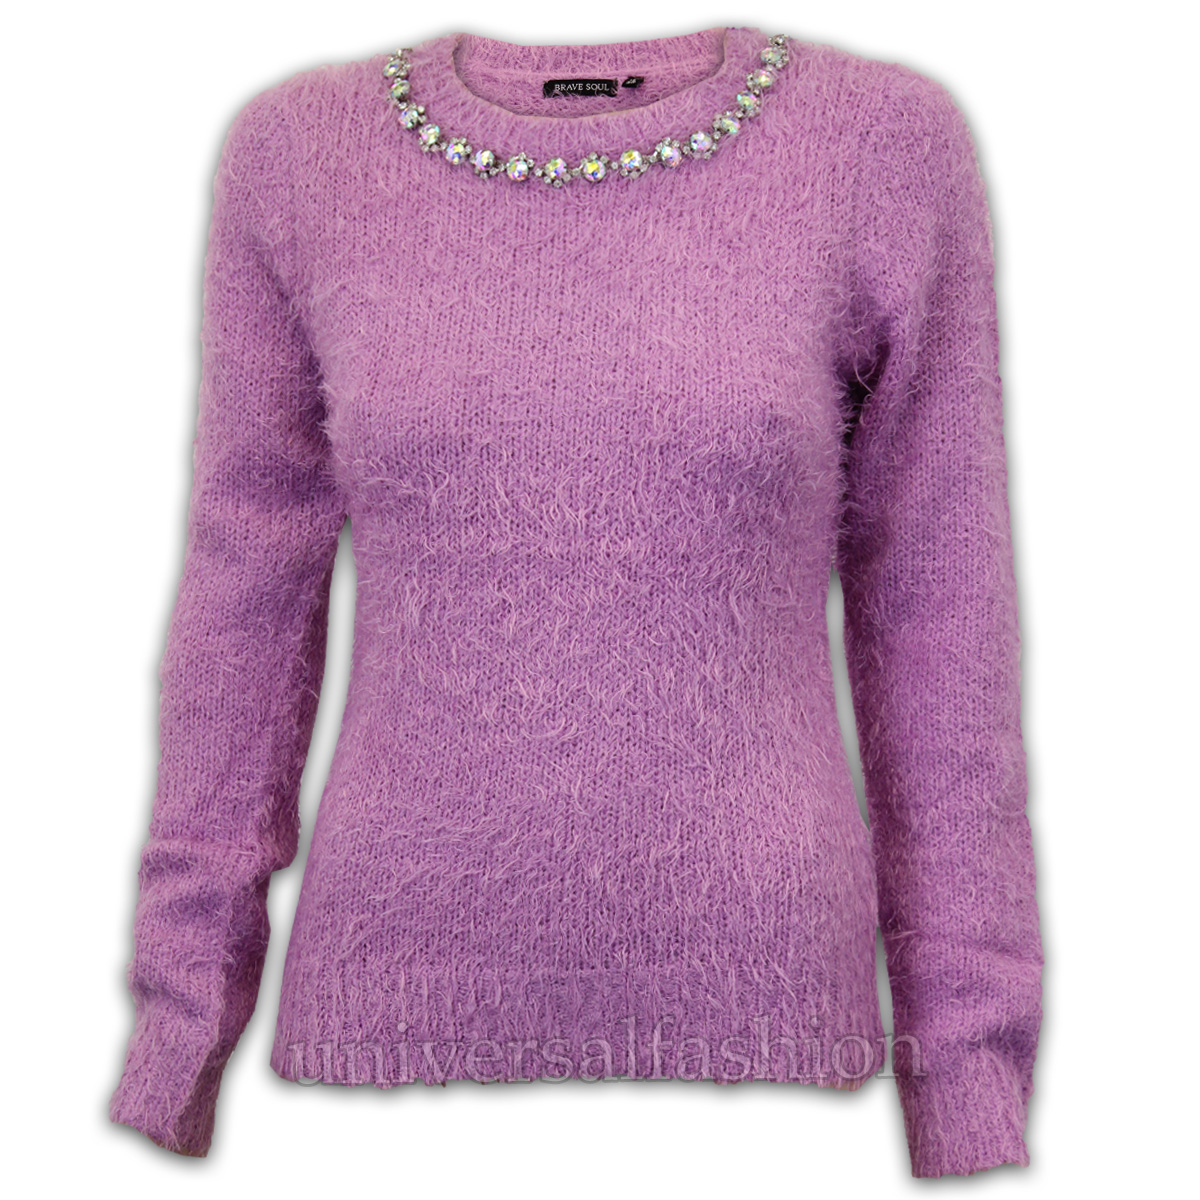 Soft and warm fluffy ladies sweater with pattern detail. A cosy option with jeans or smarter separates. Winter perfect knit ; Easy care ; Goes with so many things; Soft and warm fluffy knit with pattern detail. Regular fit. Machine washable. 60% Polyamide, 20% Acrylic, 20% Polyester. Length: 64cm (25inch) approx. Soft and warm fluffy knit with pattern detail.